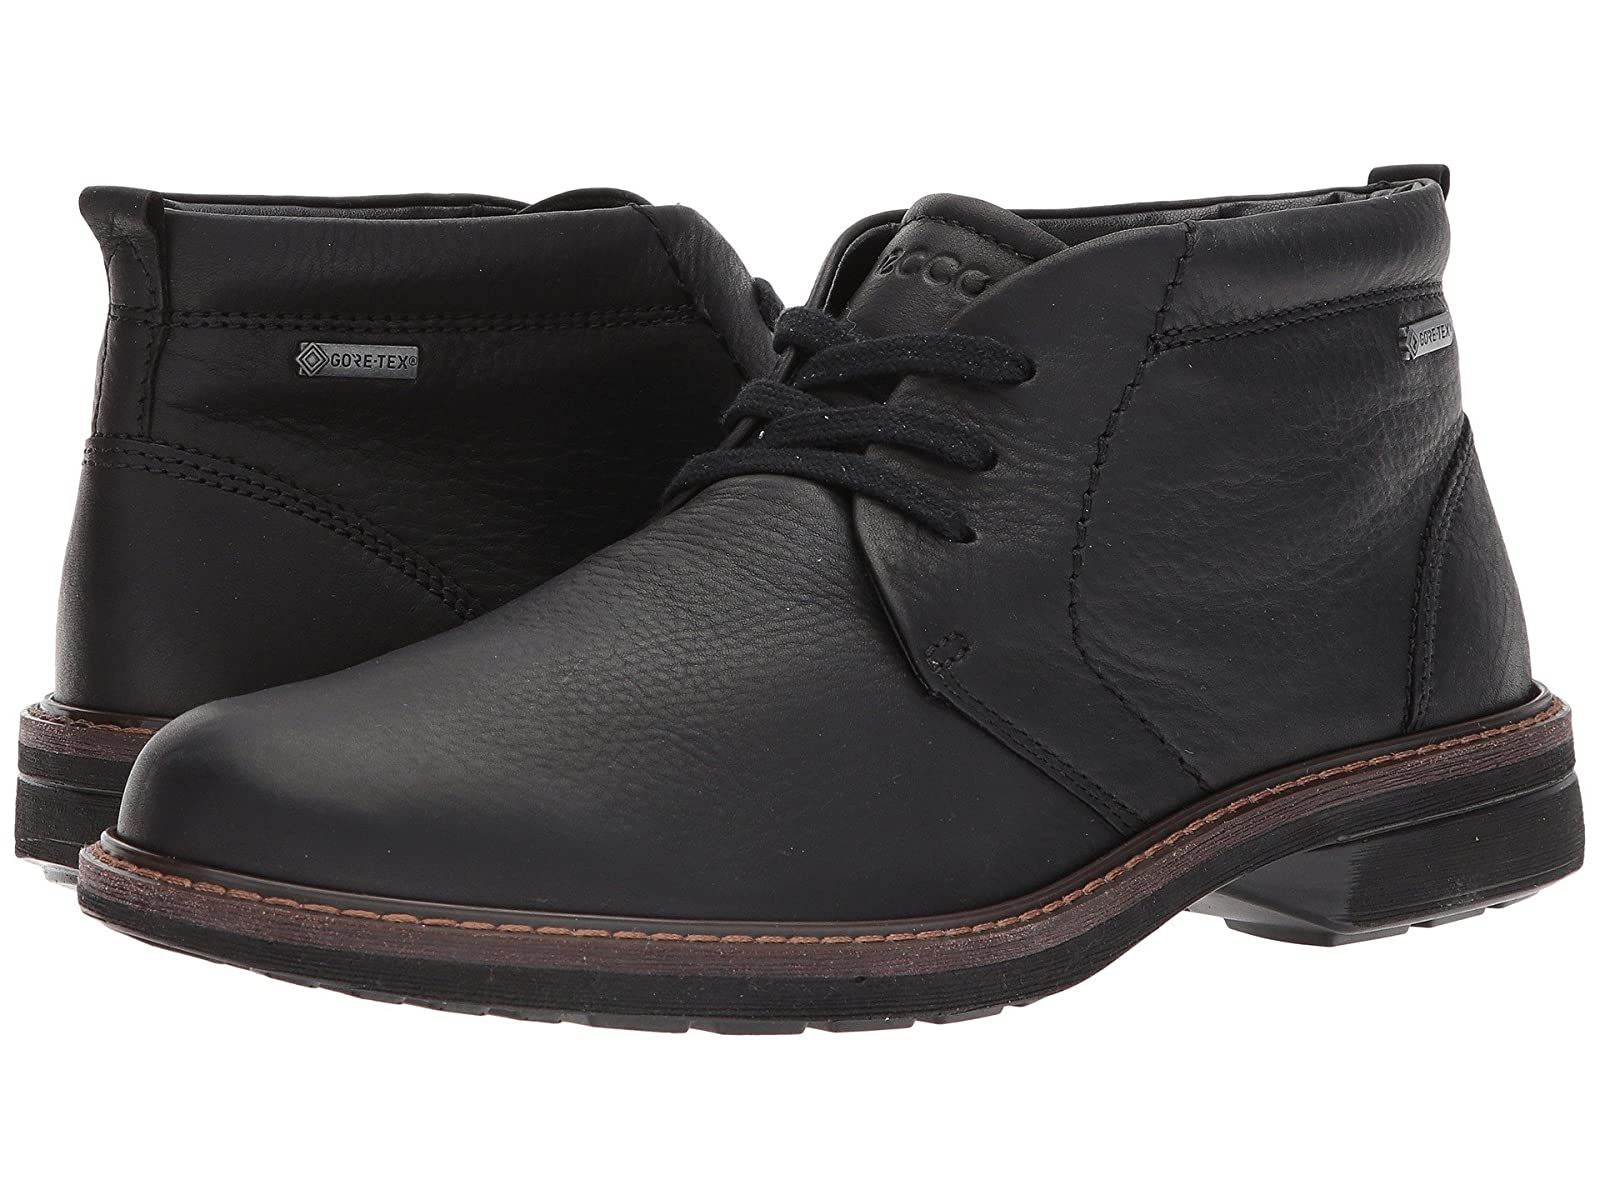 ECCO Turn Gore-Tex Chukka TieAffordable and distinctive shoes